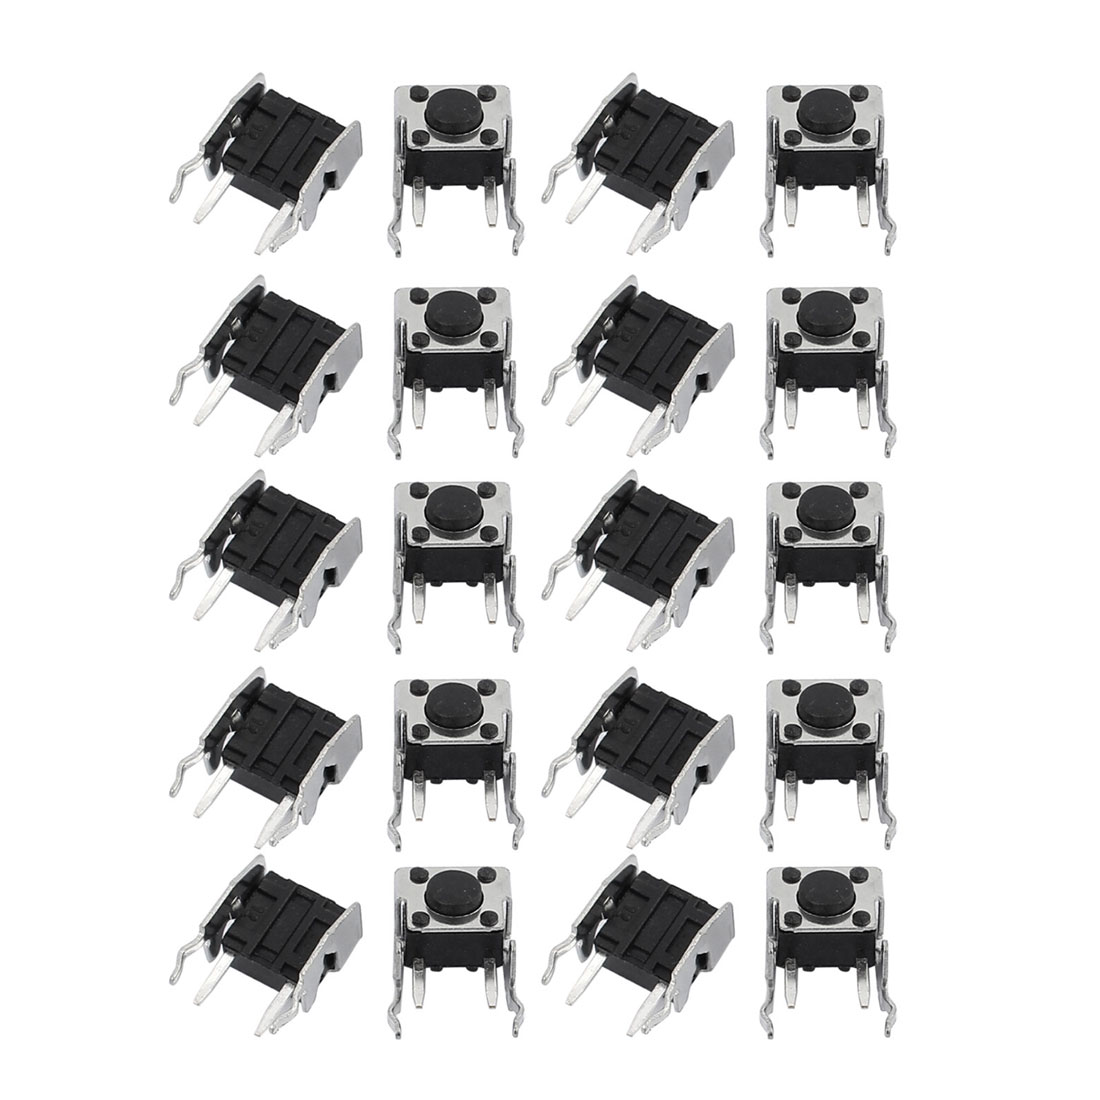 20Pcs 6mmx6mmx4.5mm Panel PCB Momentary Tactile Tact Push Button Switch